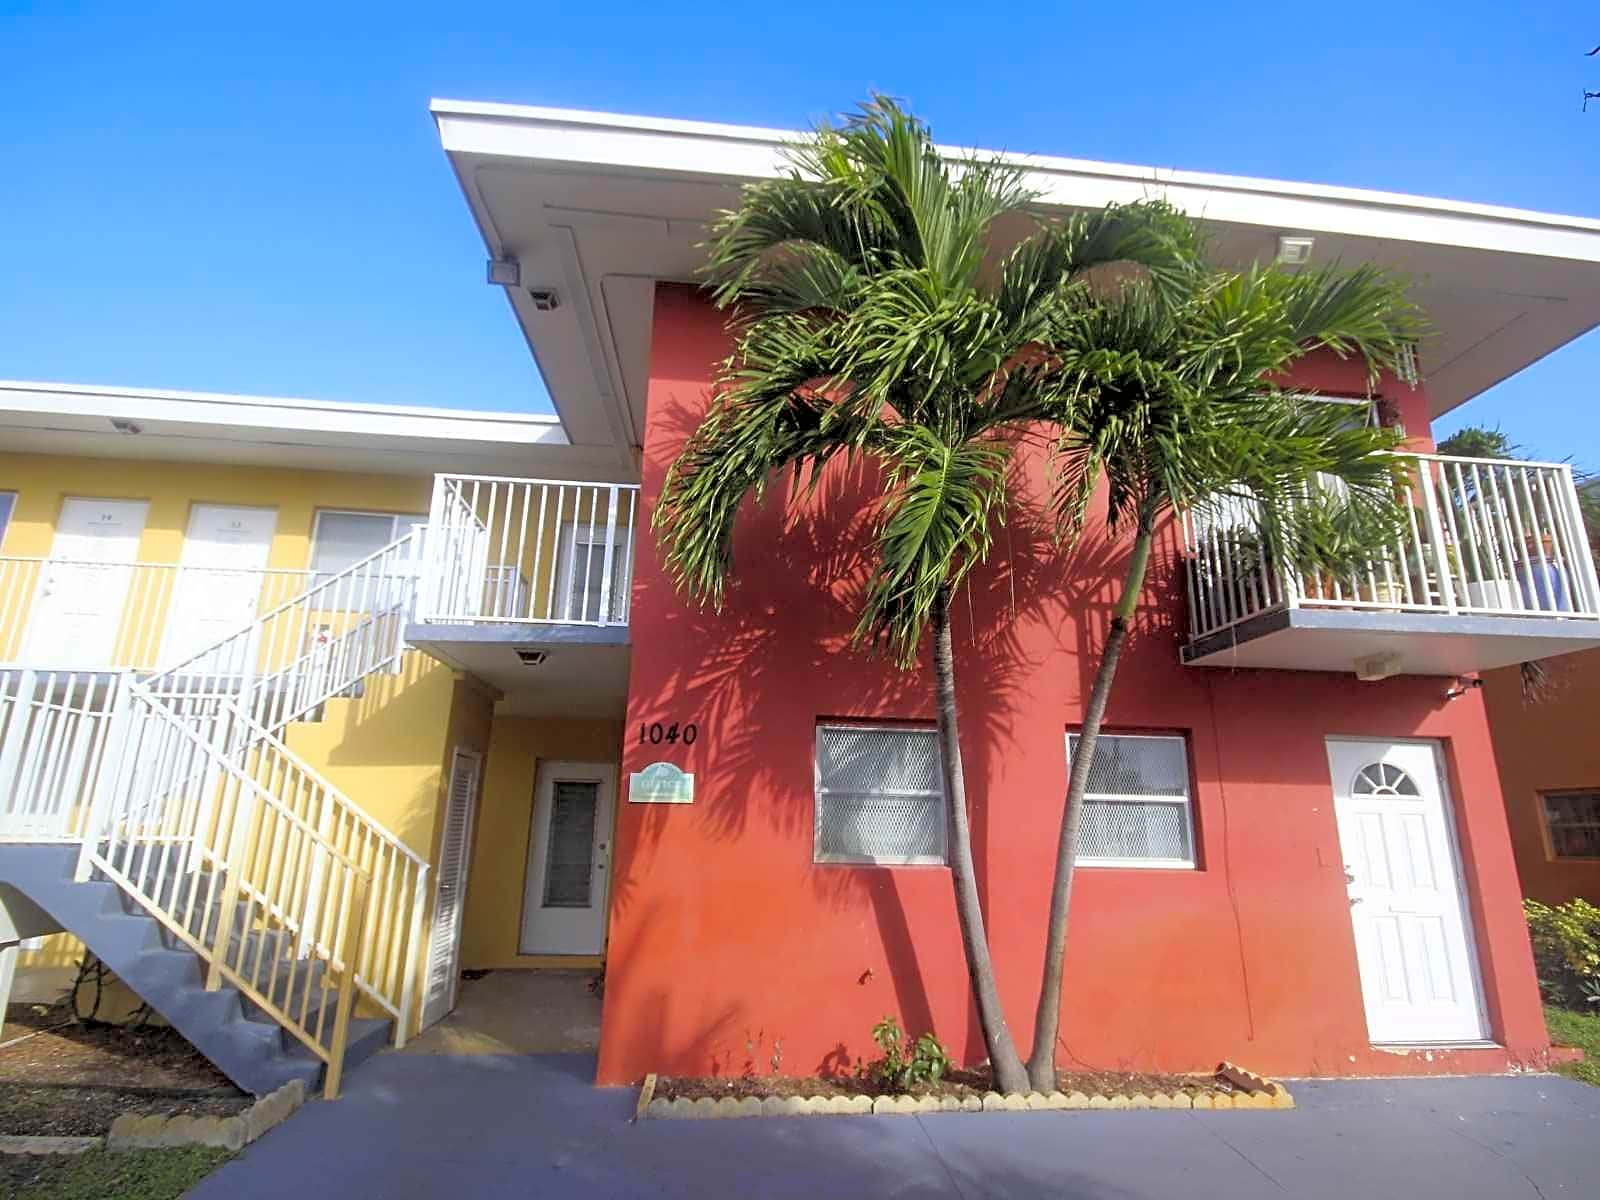 Photo: Fort Lauderdale Apartment for Rent - $785.00 / month; 1 Bd & 1 Ba